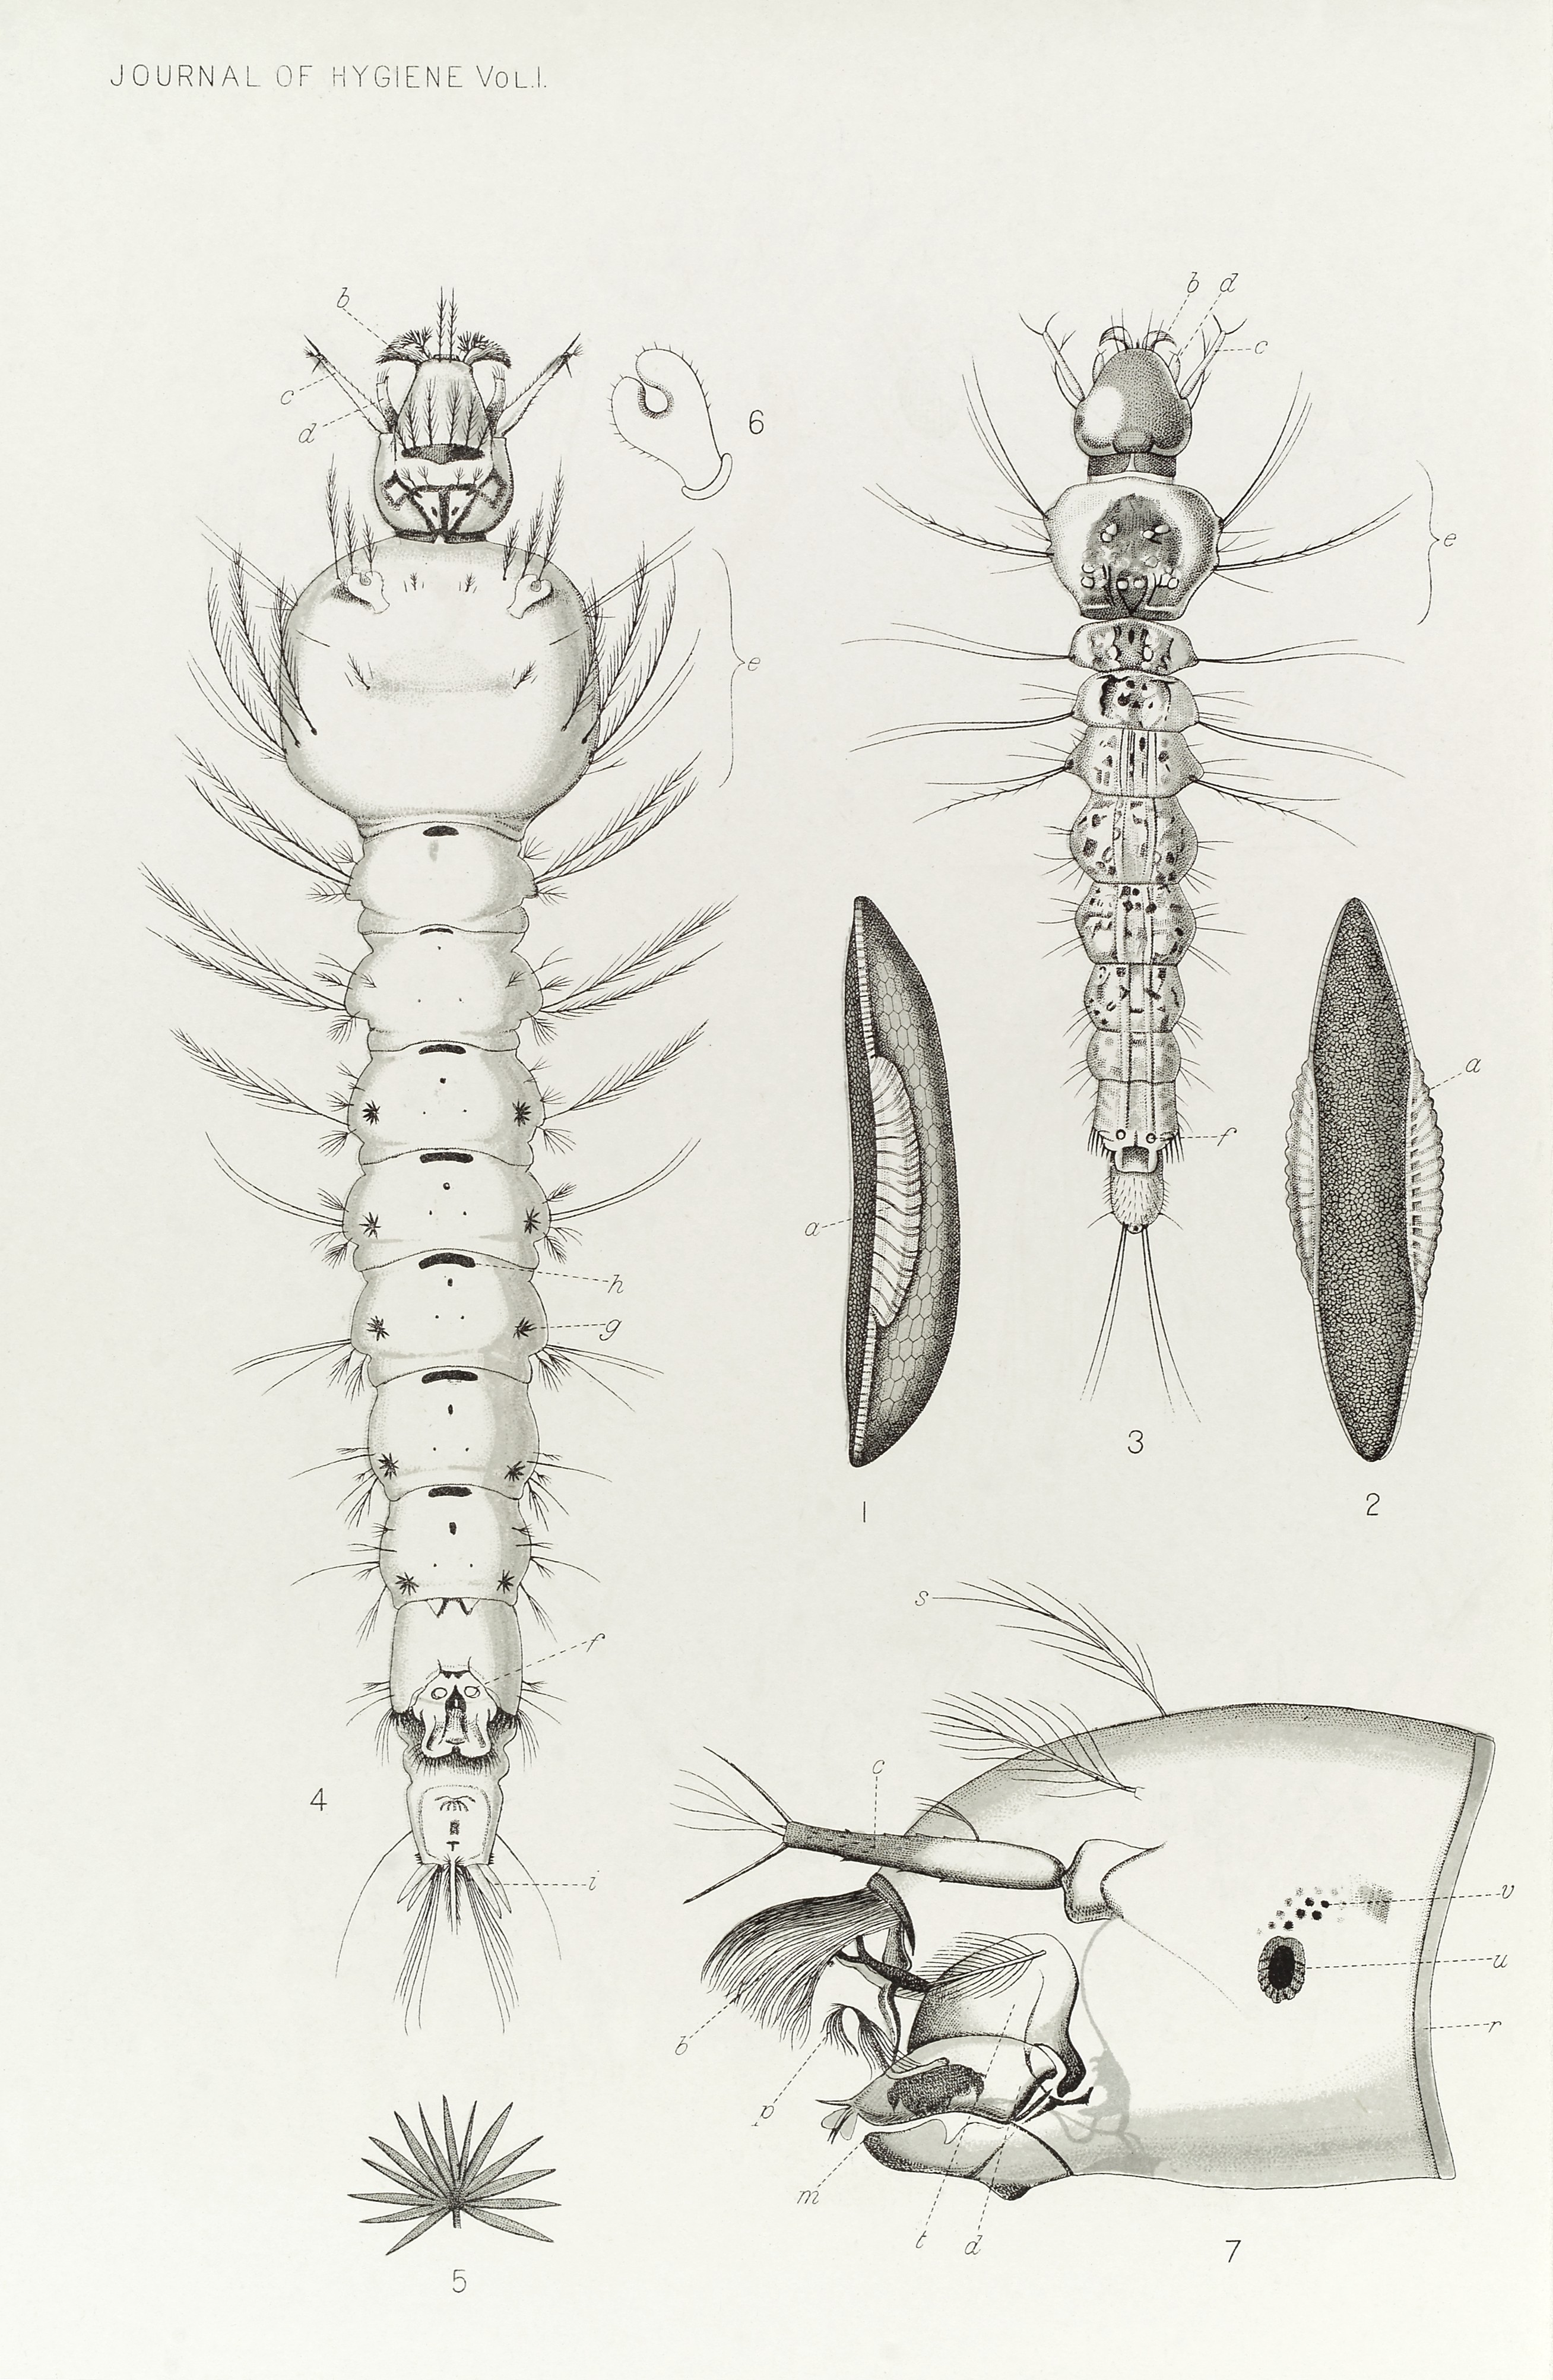 Filelife Cycle Anatomy Of Anopheles Mosquito 1901 Wellcome